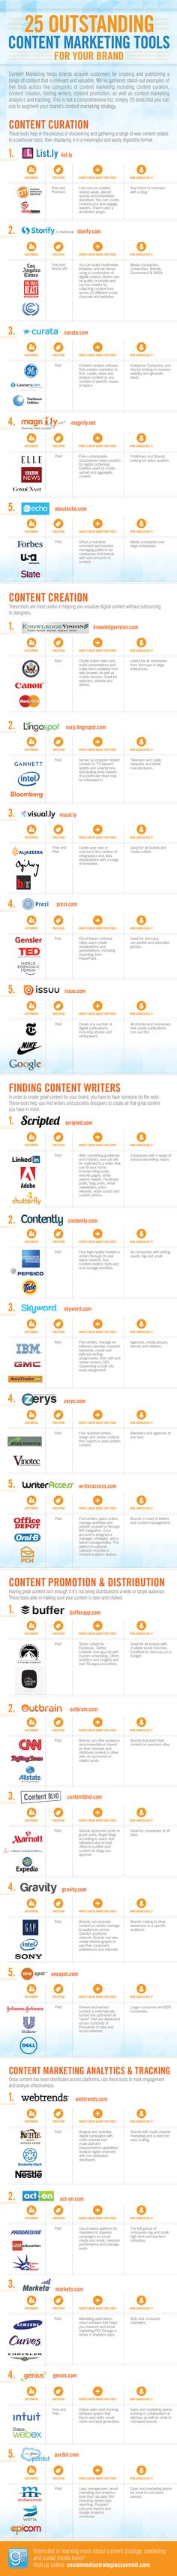 25 Outostanding Content Marketing Tools